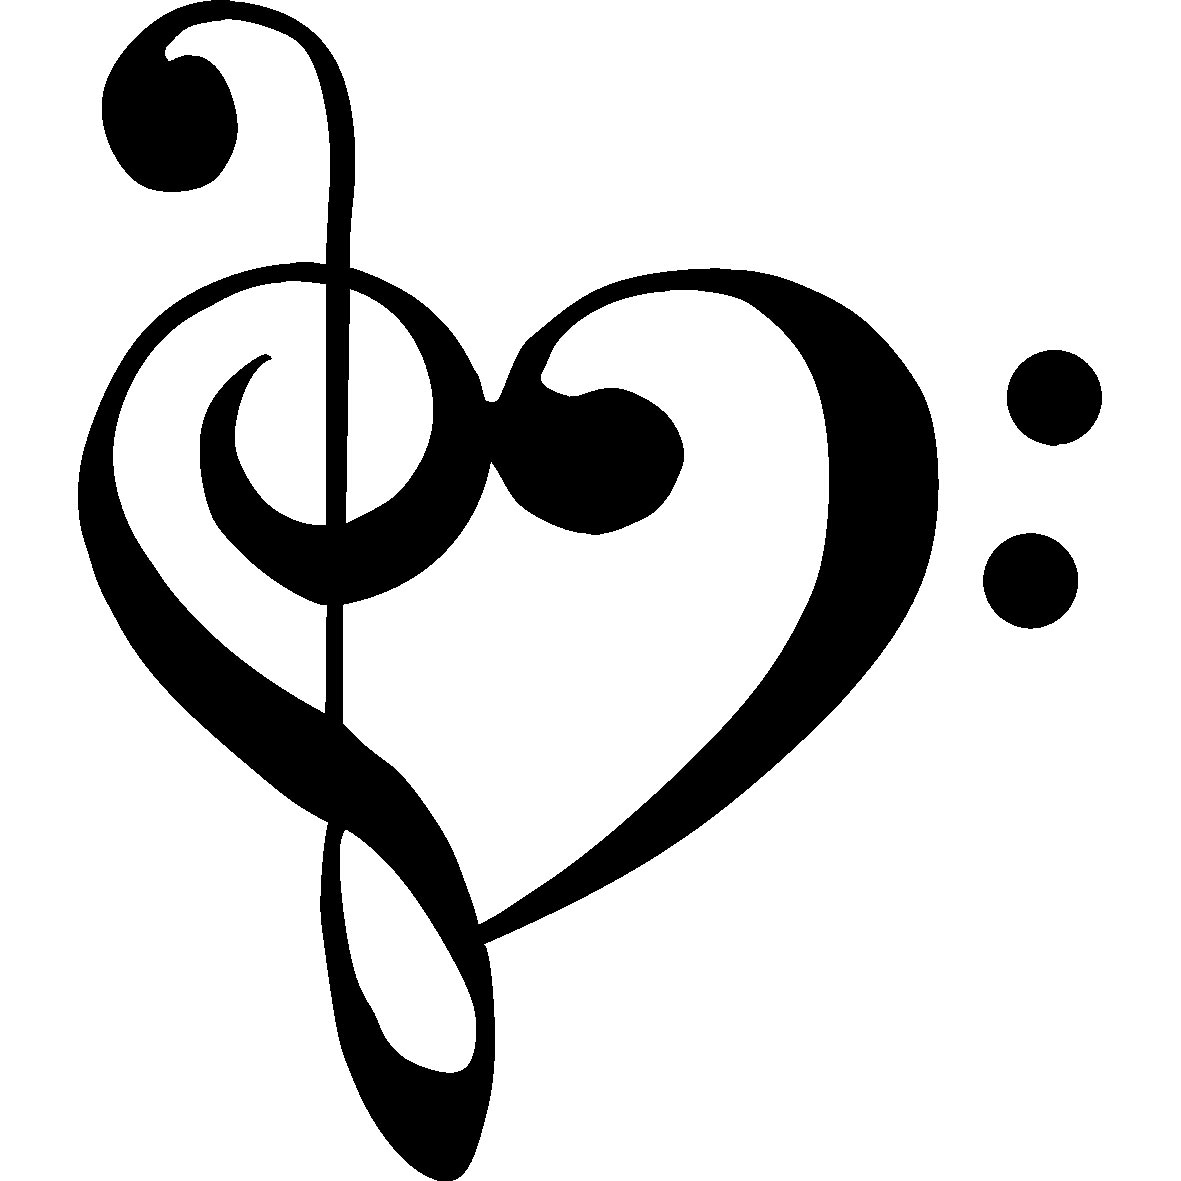 music clef heart tattoo clipart best. Black Bedroom Furniture Sets. Home Design Ideas